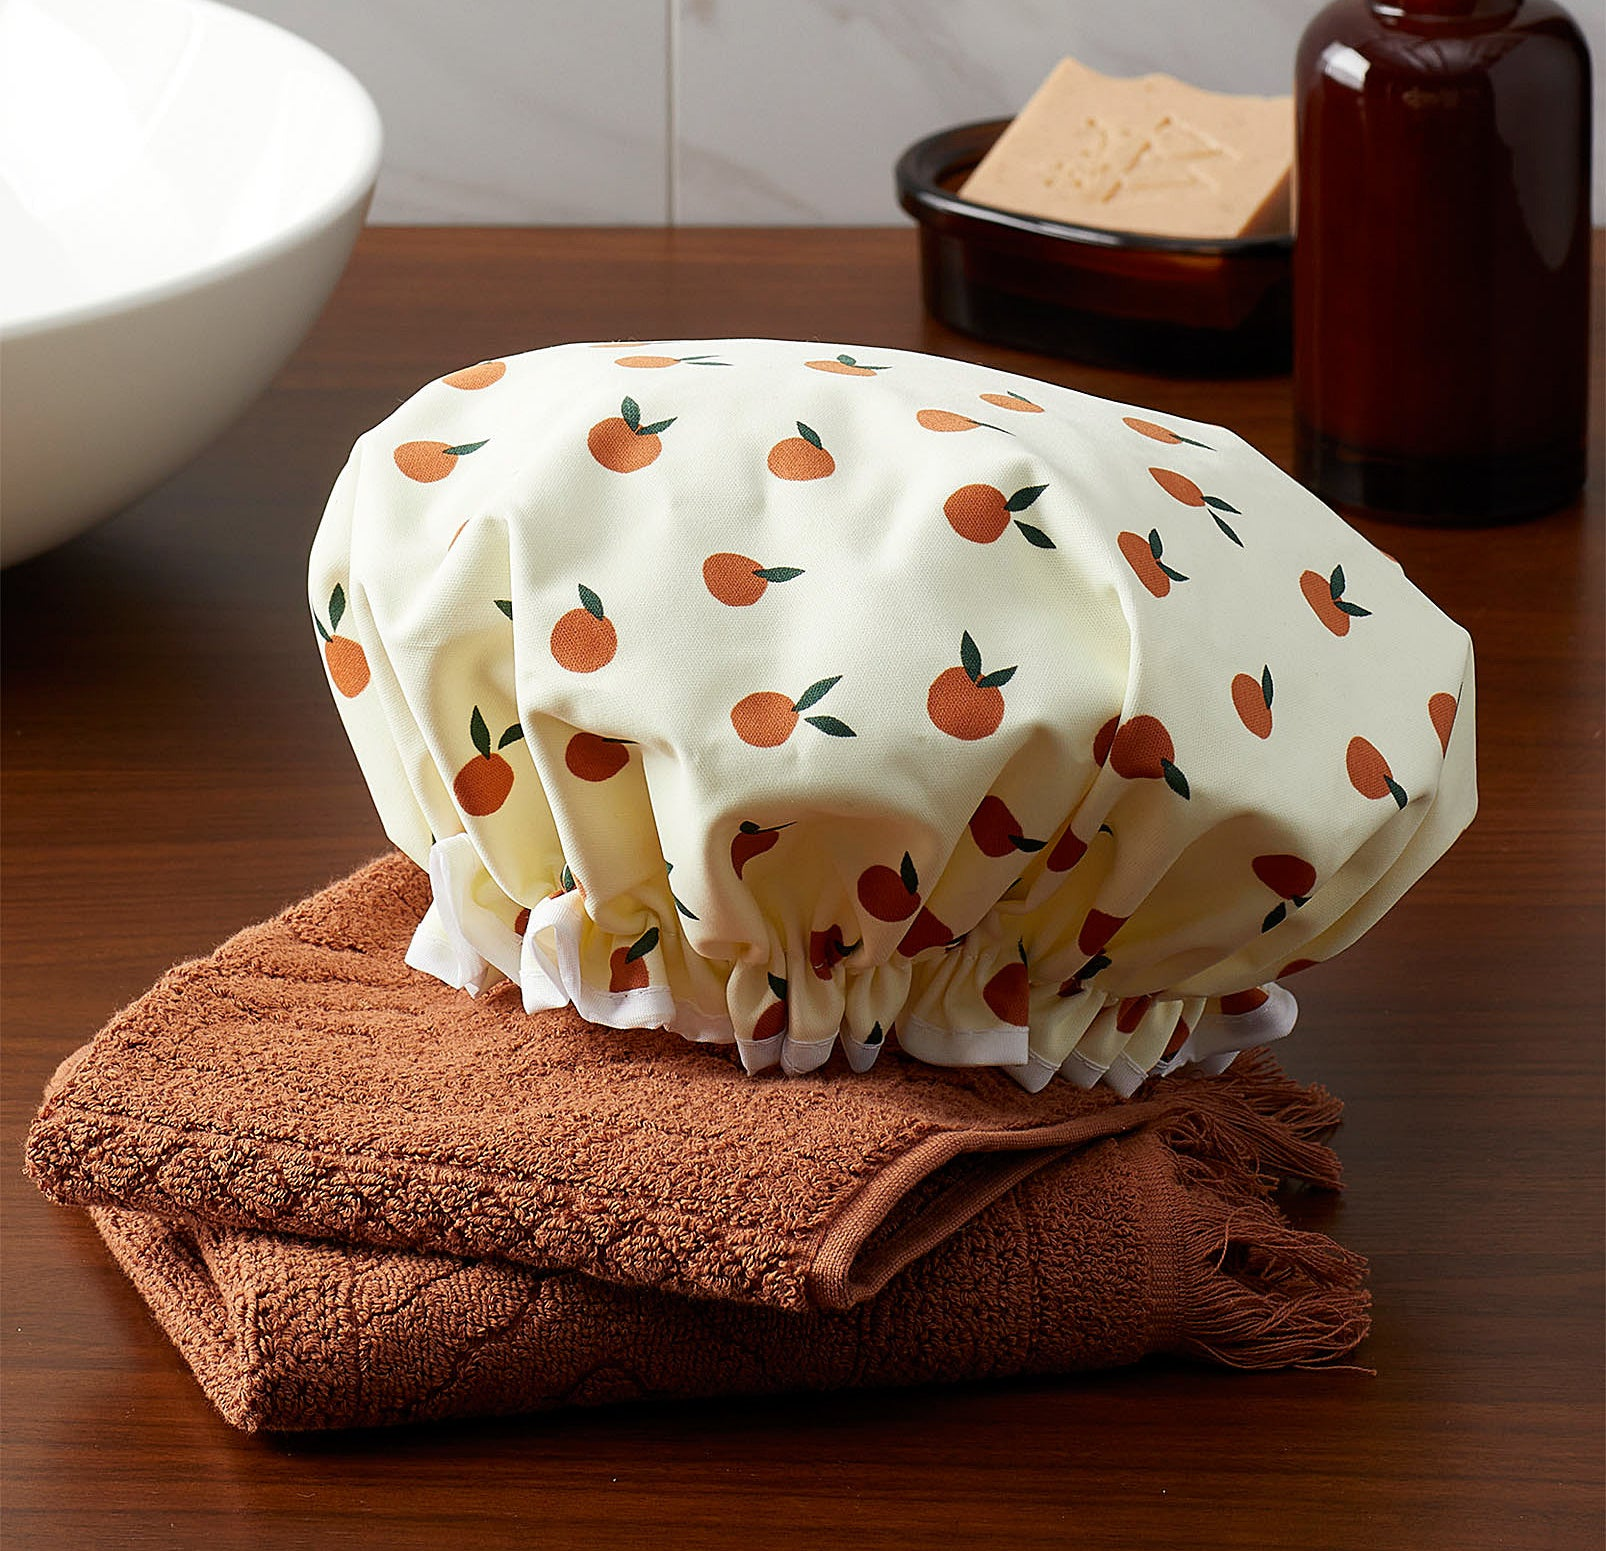 A shower cap with a fruit pattern on it lying on a folded towel